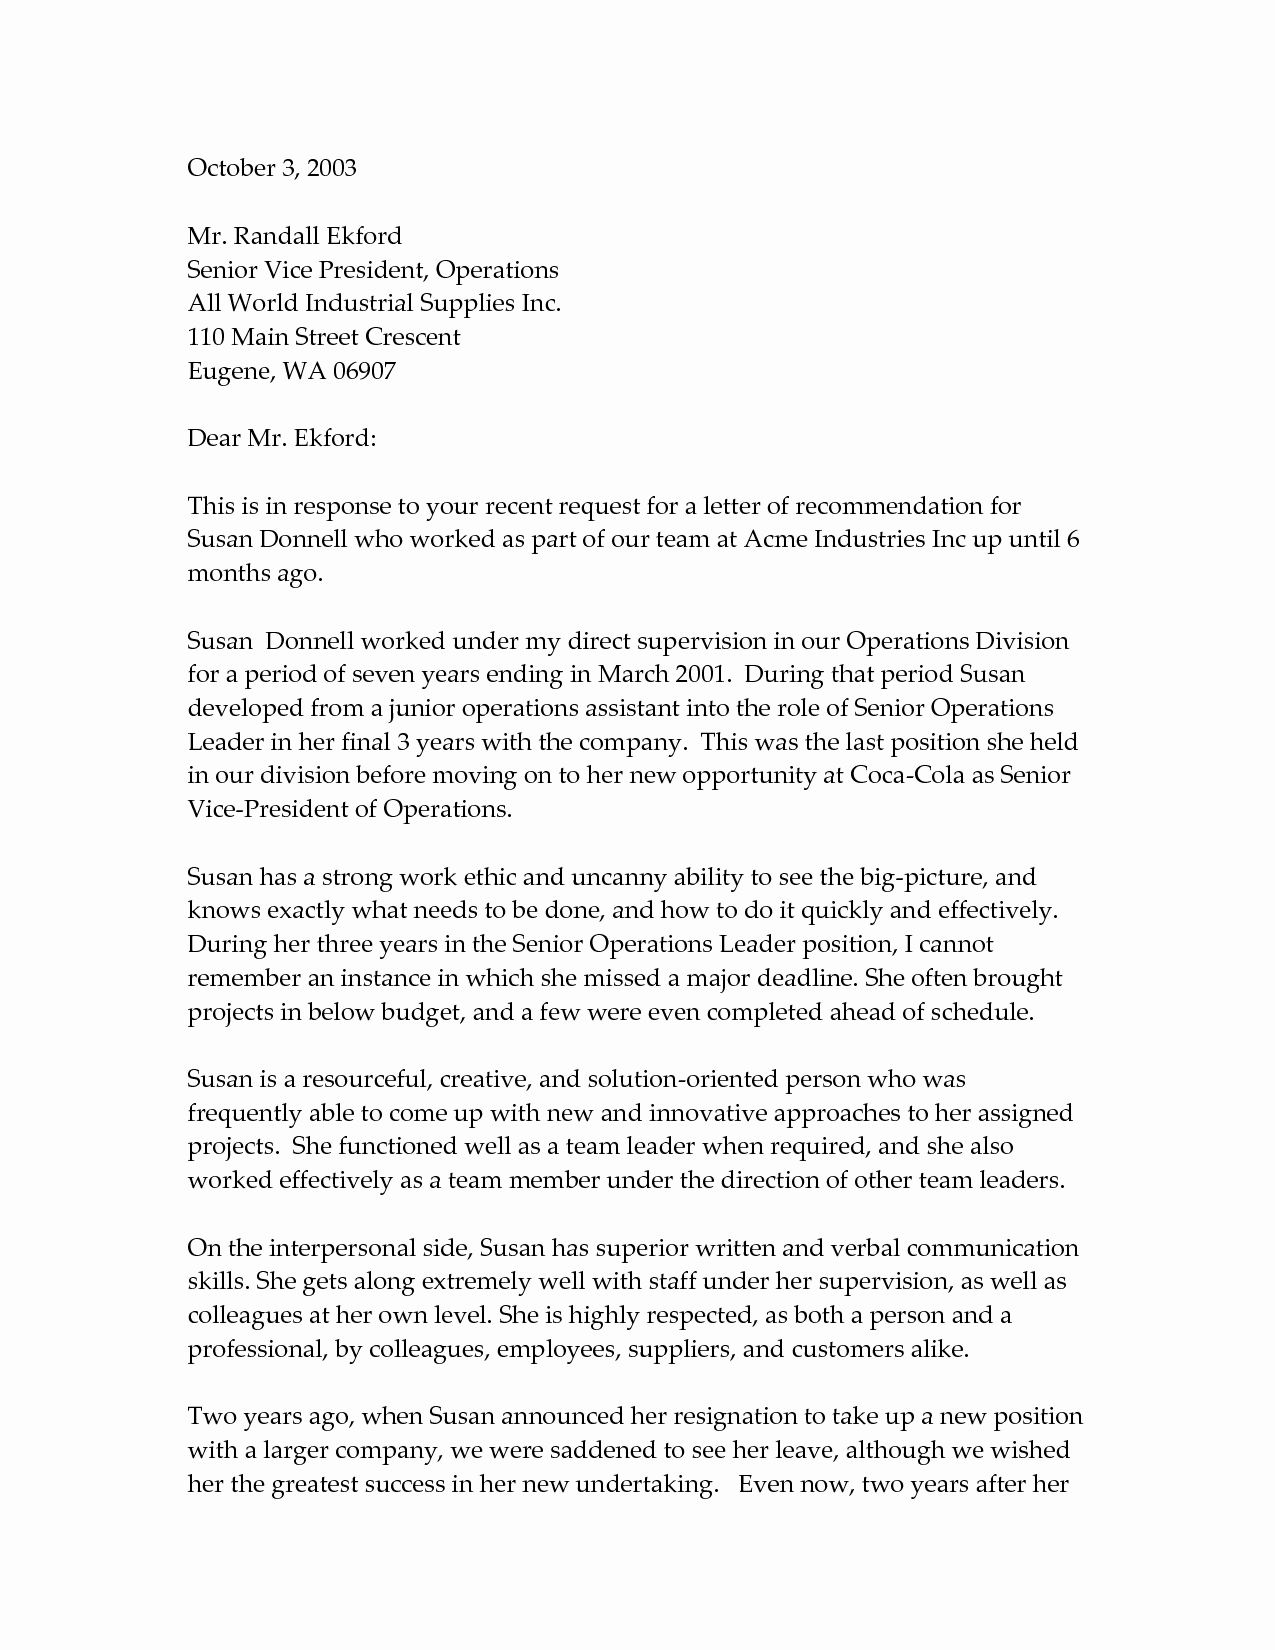 Professional Letter Of Recommendation format Luxury Professional Re Mendation Letter